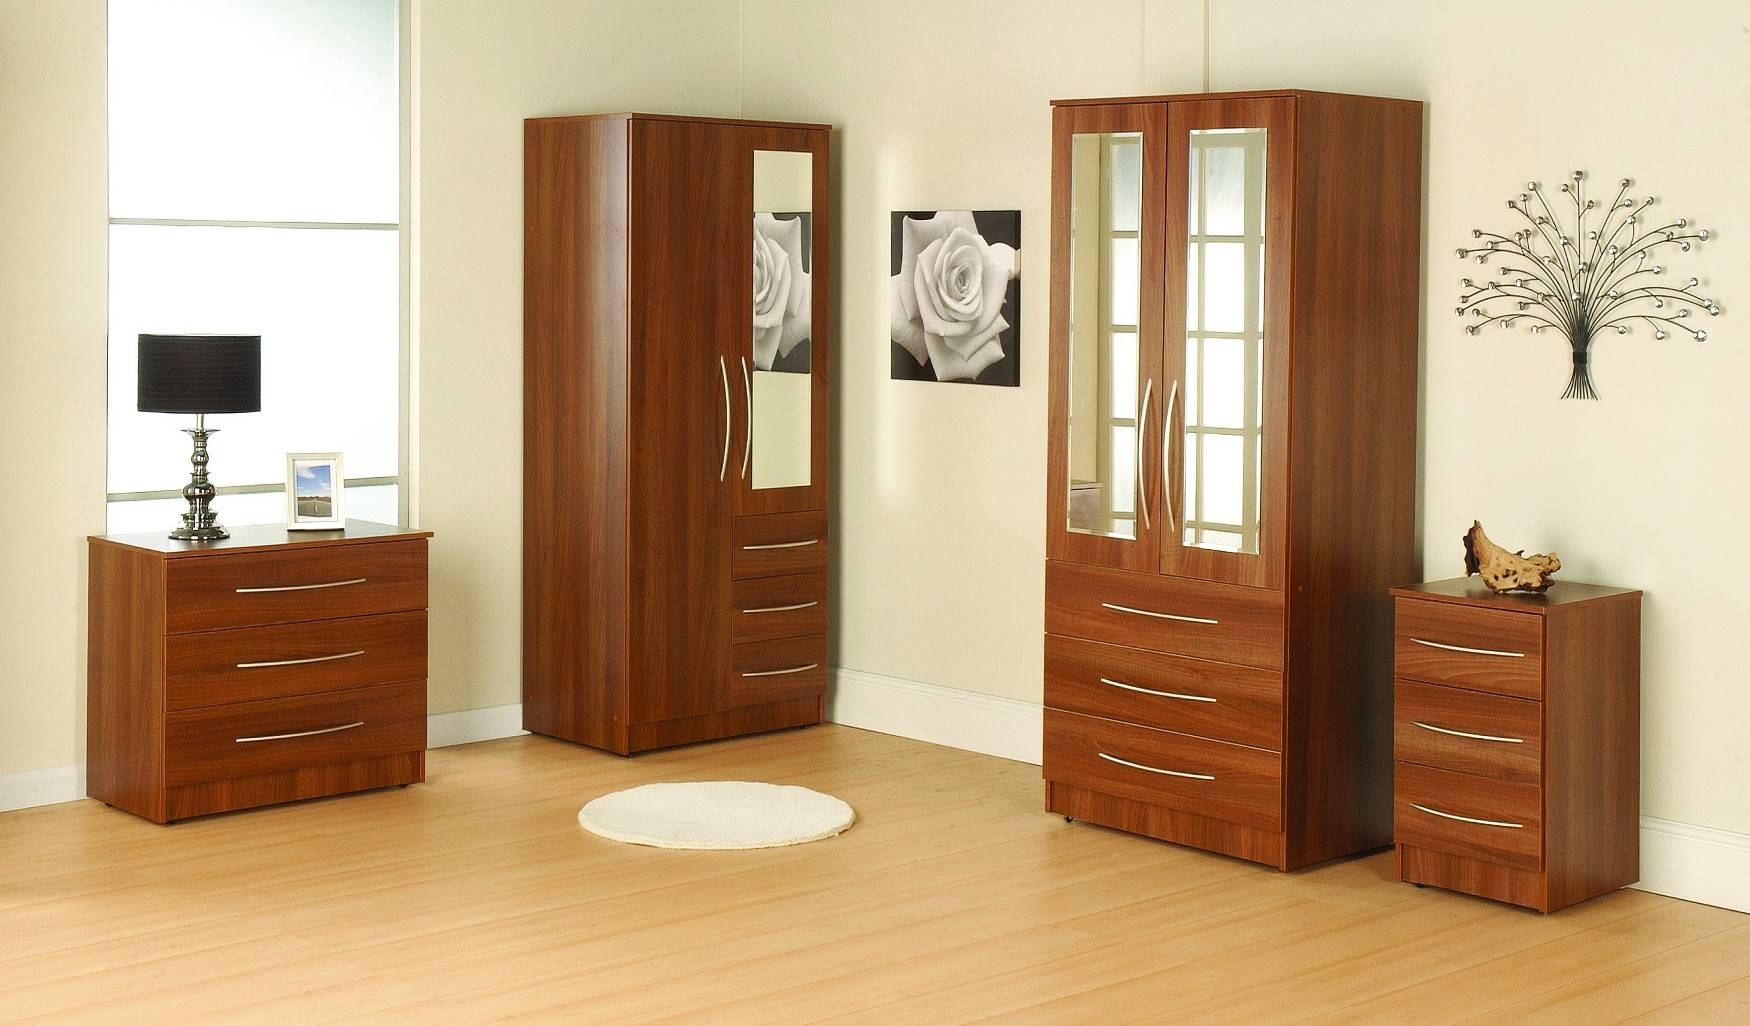 Adams Furniture Store   Bedroom Inside Wardrobes Chest Of Drawers  Combination (Image 2 Of 15